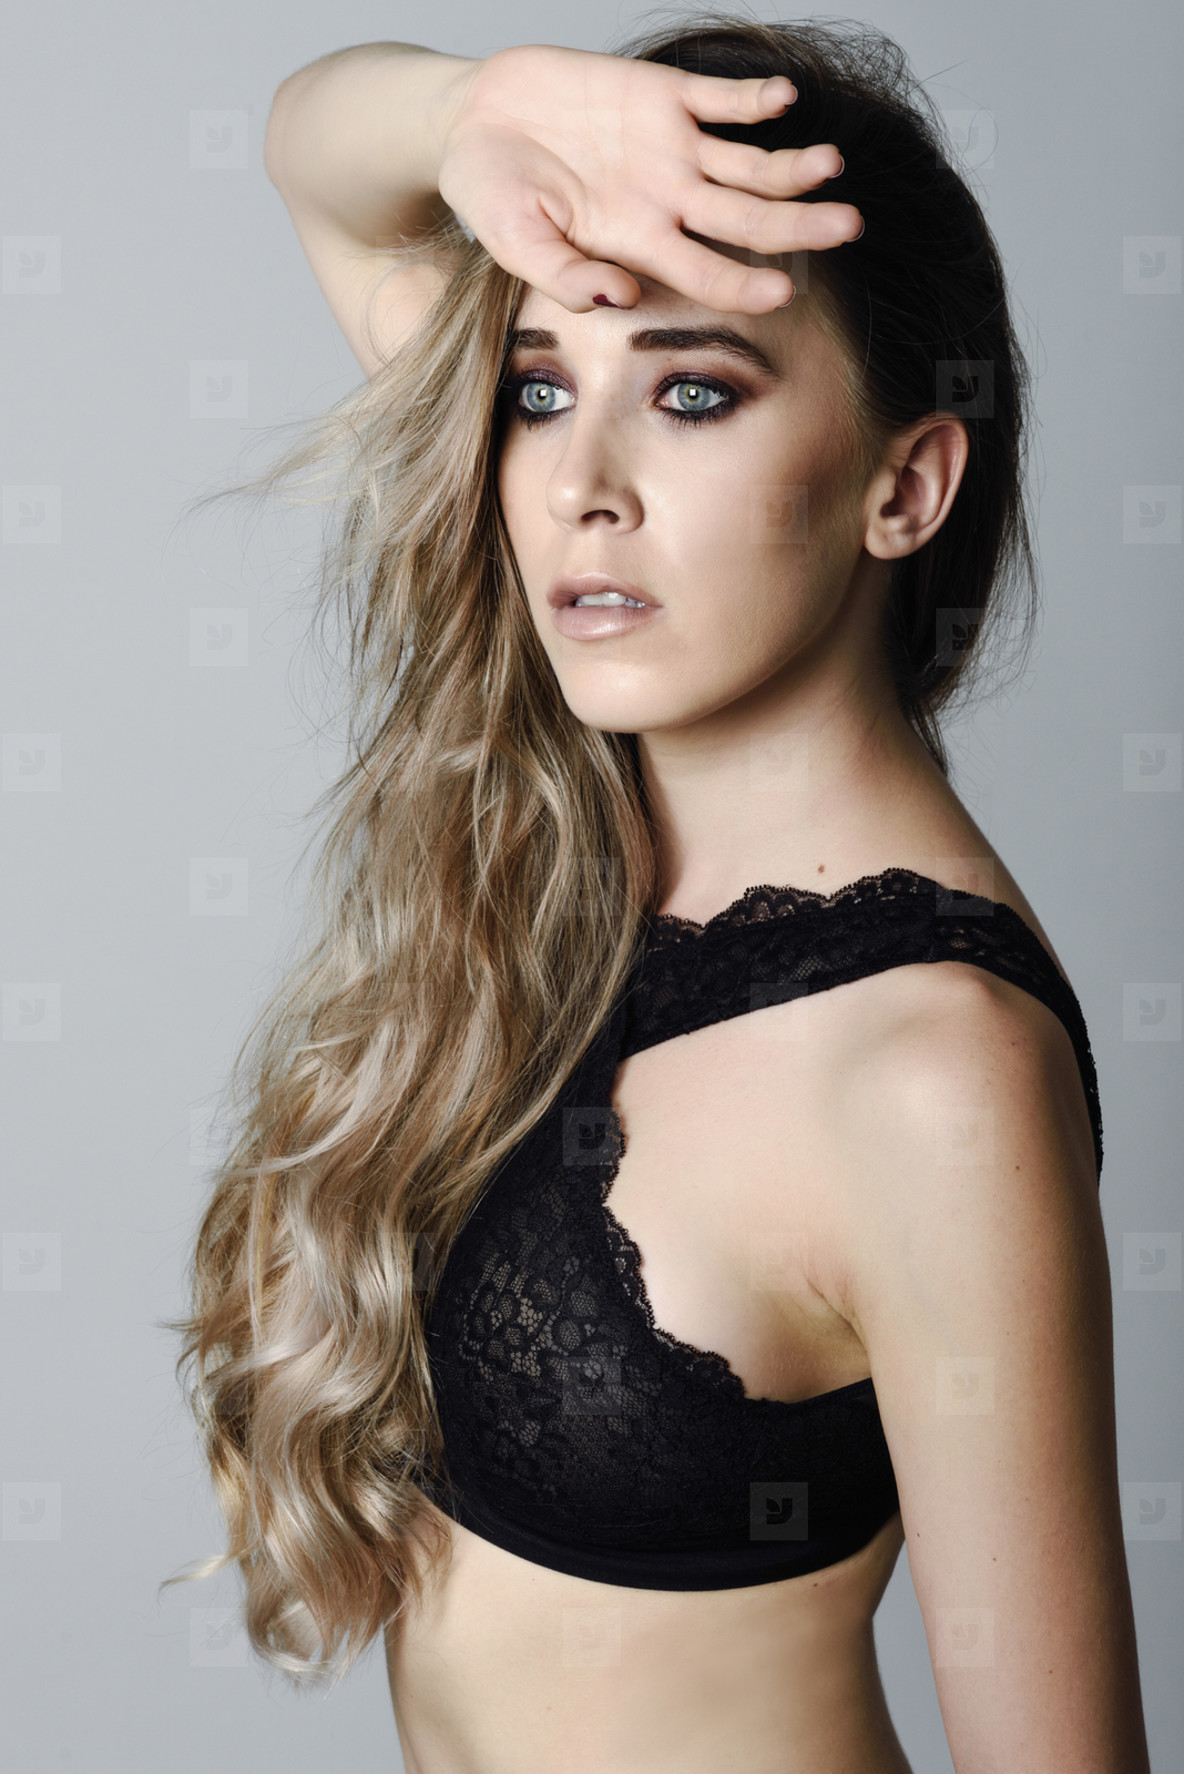 Woman with long hair and blue eyes wearing black lingerie